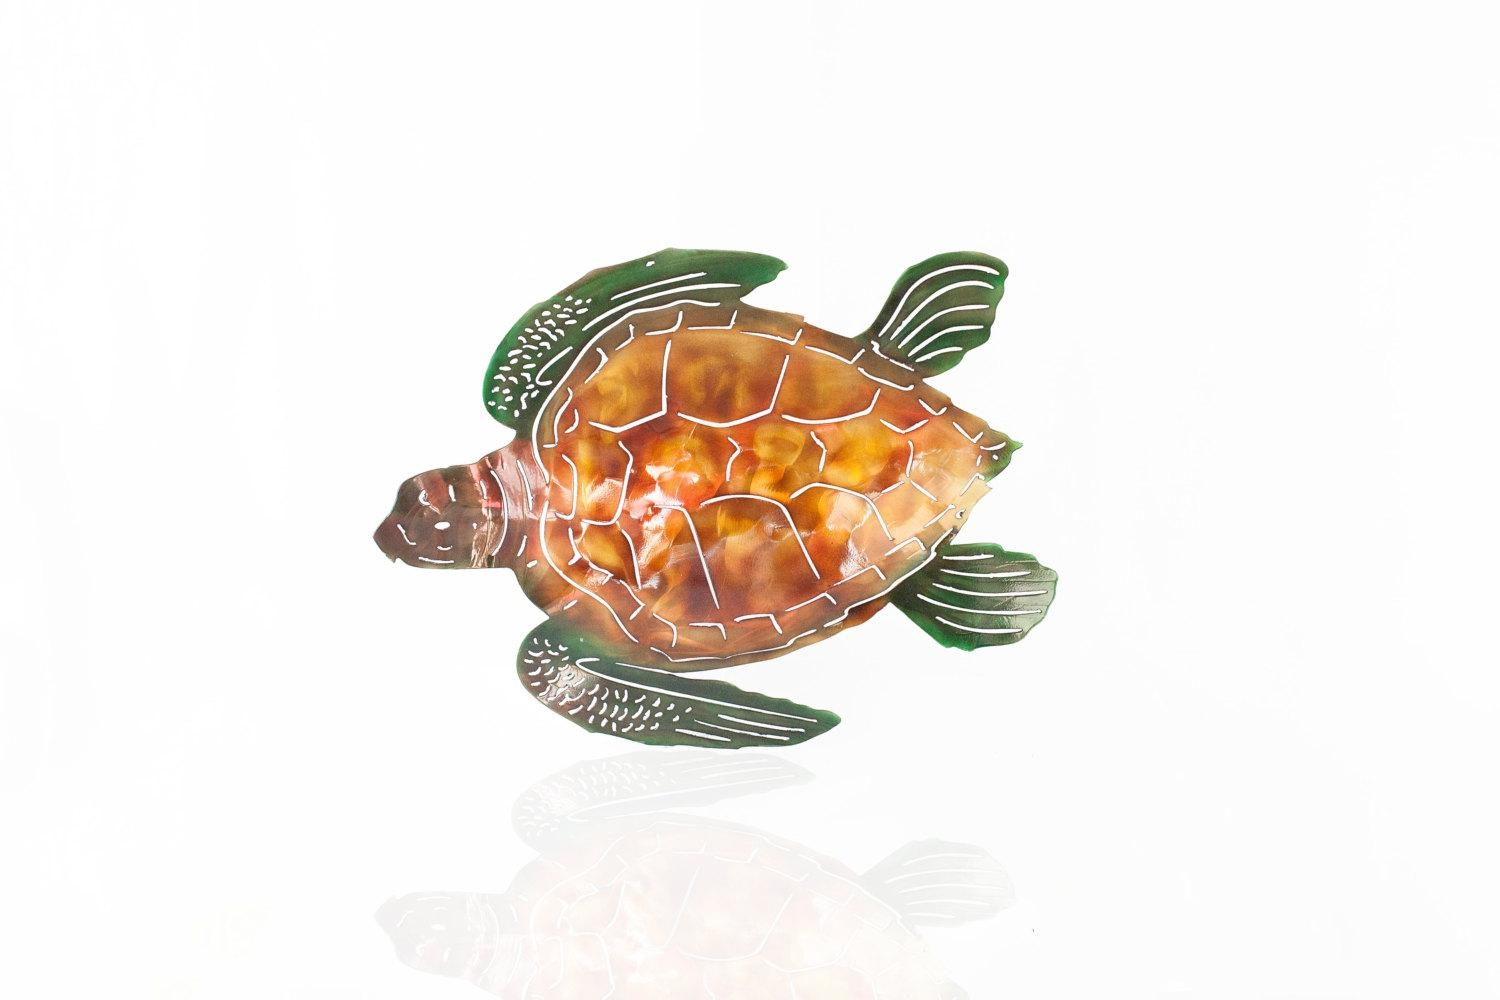 Metal Sea Turtle Wall Art, Aluminum Sea Turtle, Outdoor Art, Beach Intended For Sea Turtle Metal Wall Art (View 18 of 20)